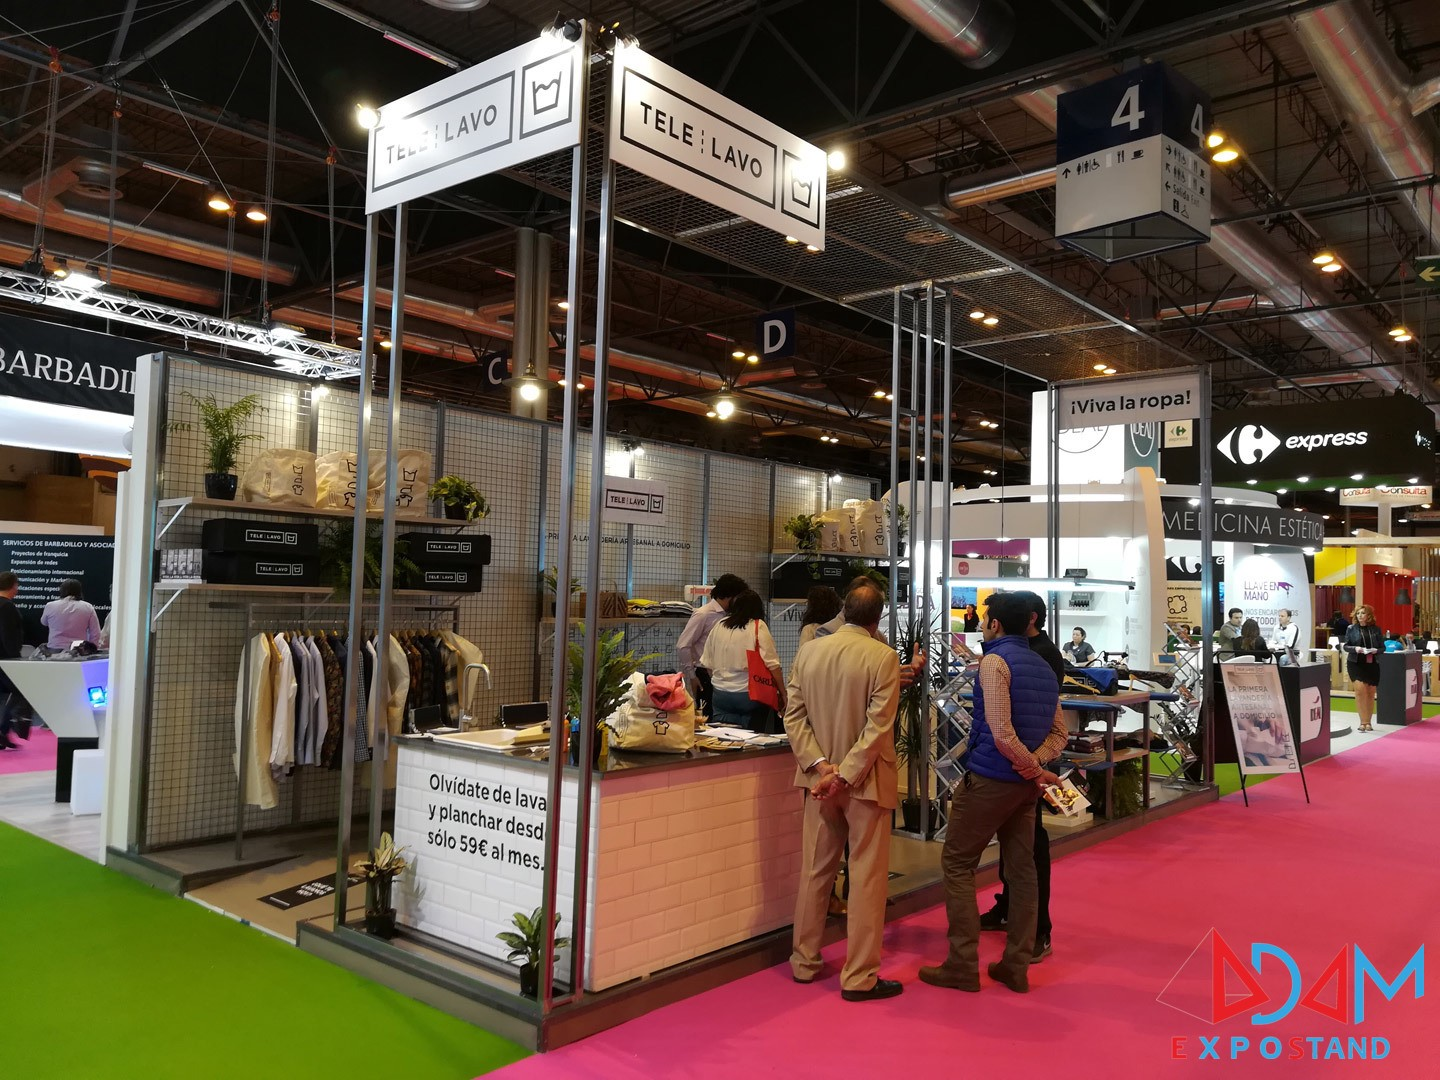 Trade Show Booth Design Ideas And Tips According To Adam ExpoStand - Car show booth ideas